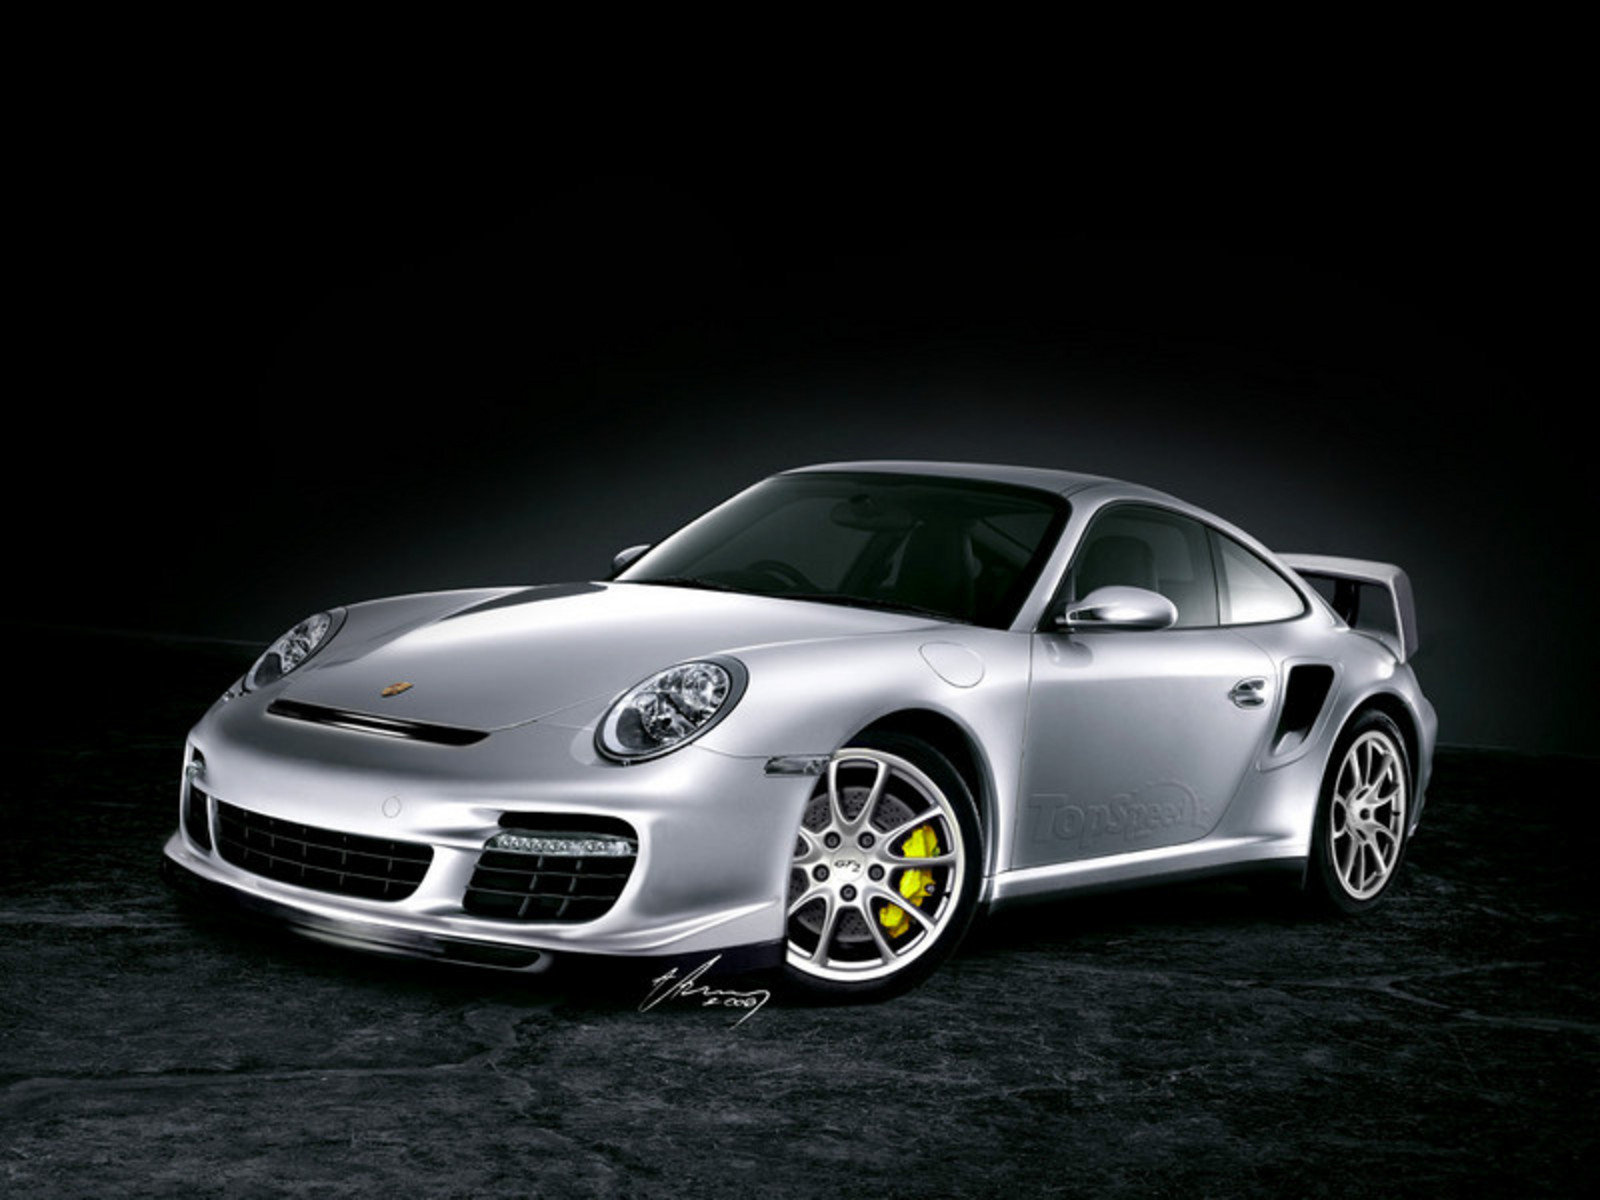 2007 porsche 911 gt2 preview picture 83487 car review top speed. Black Bedroom Furniture Sets. Home Design Ideas